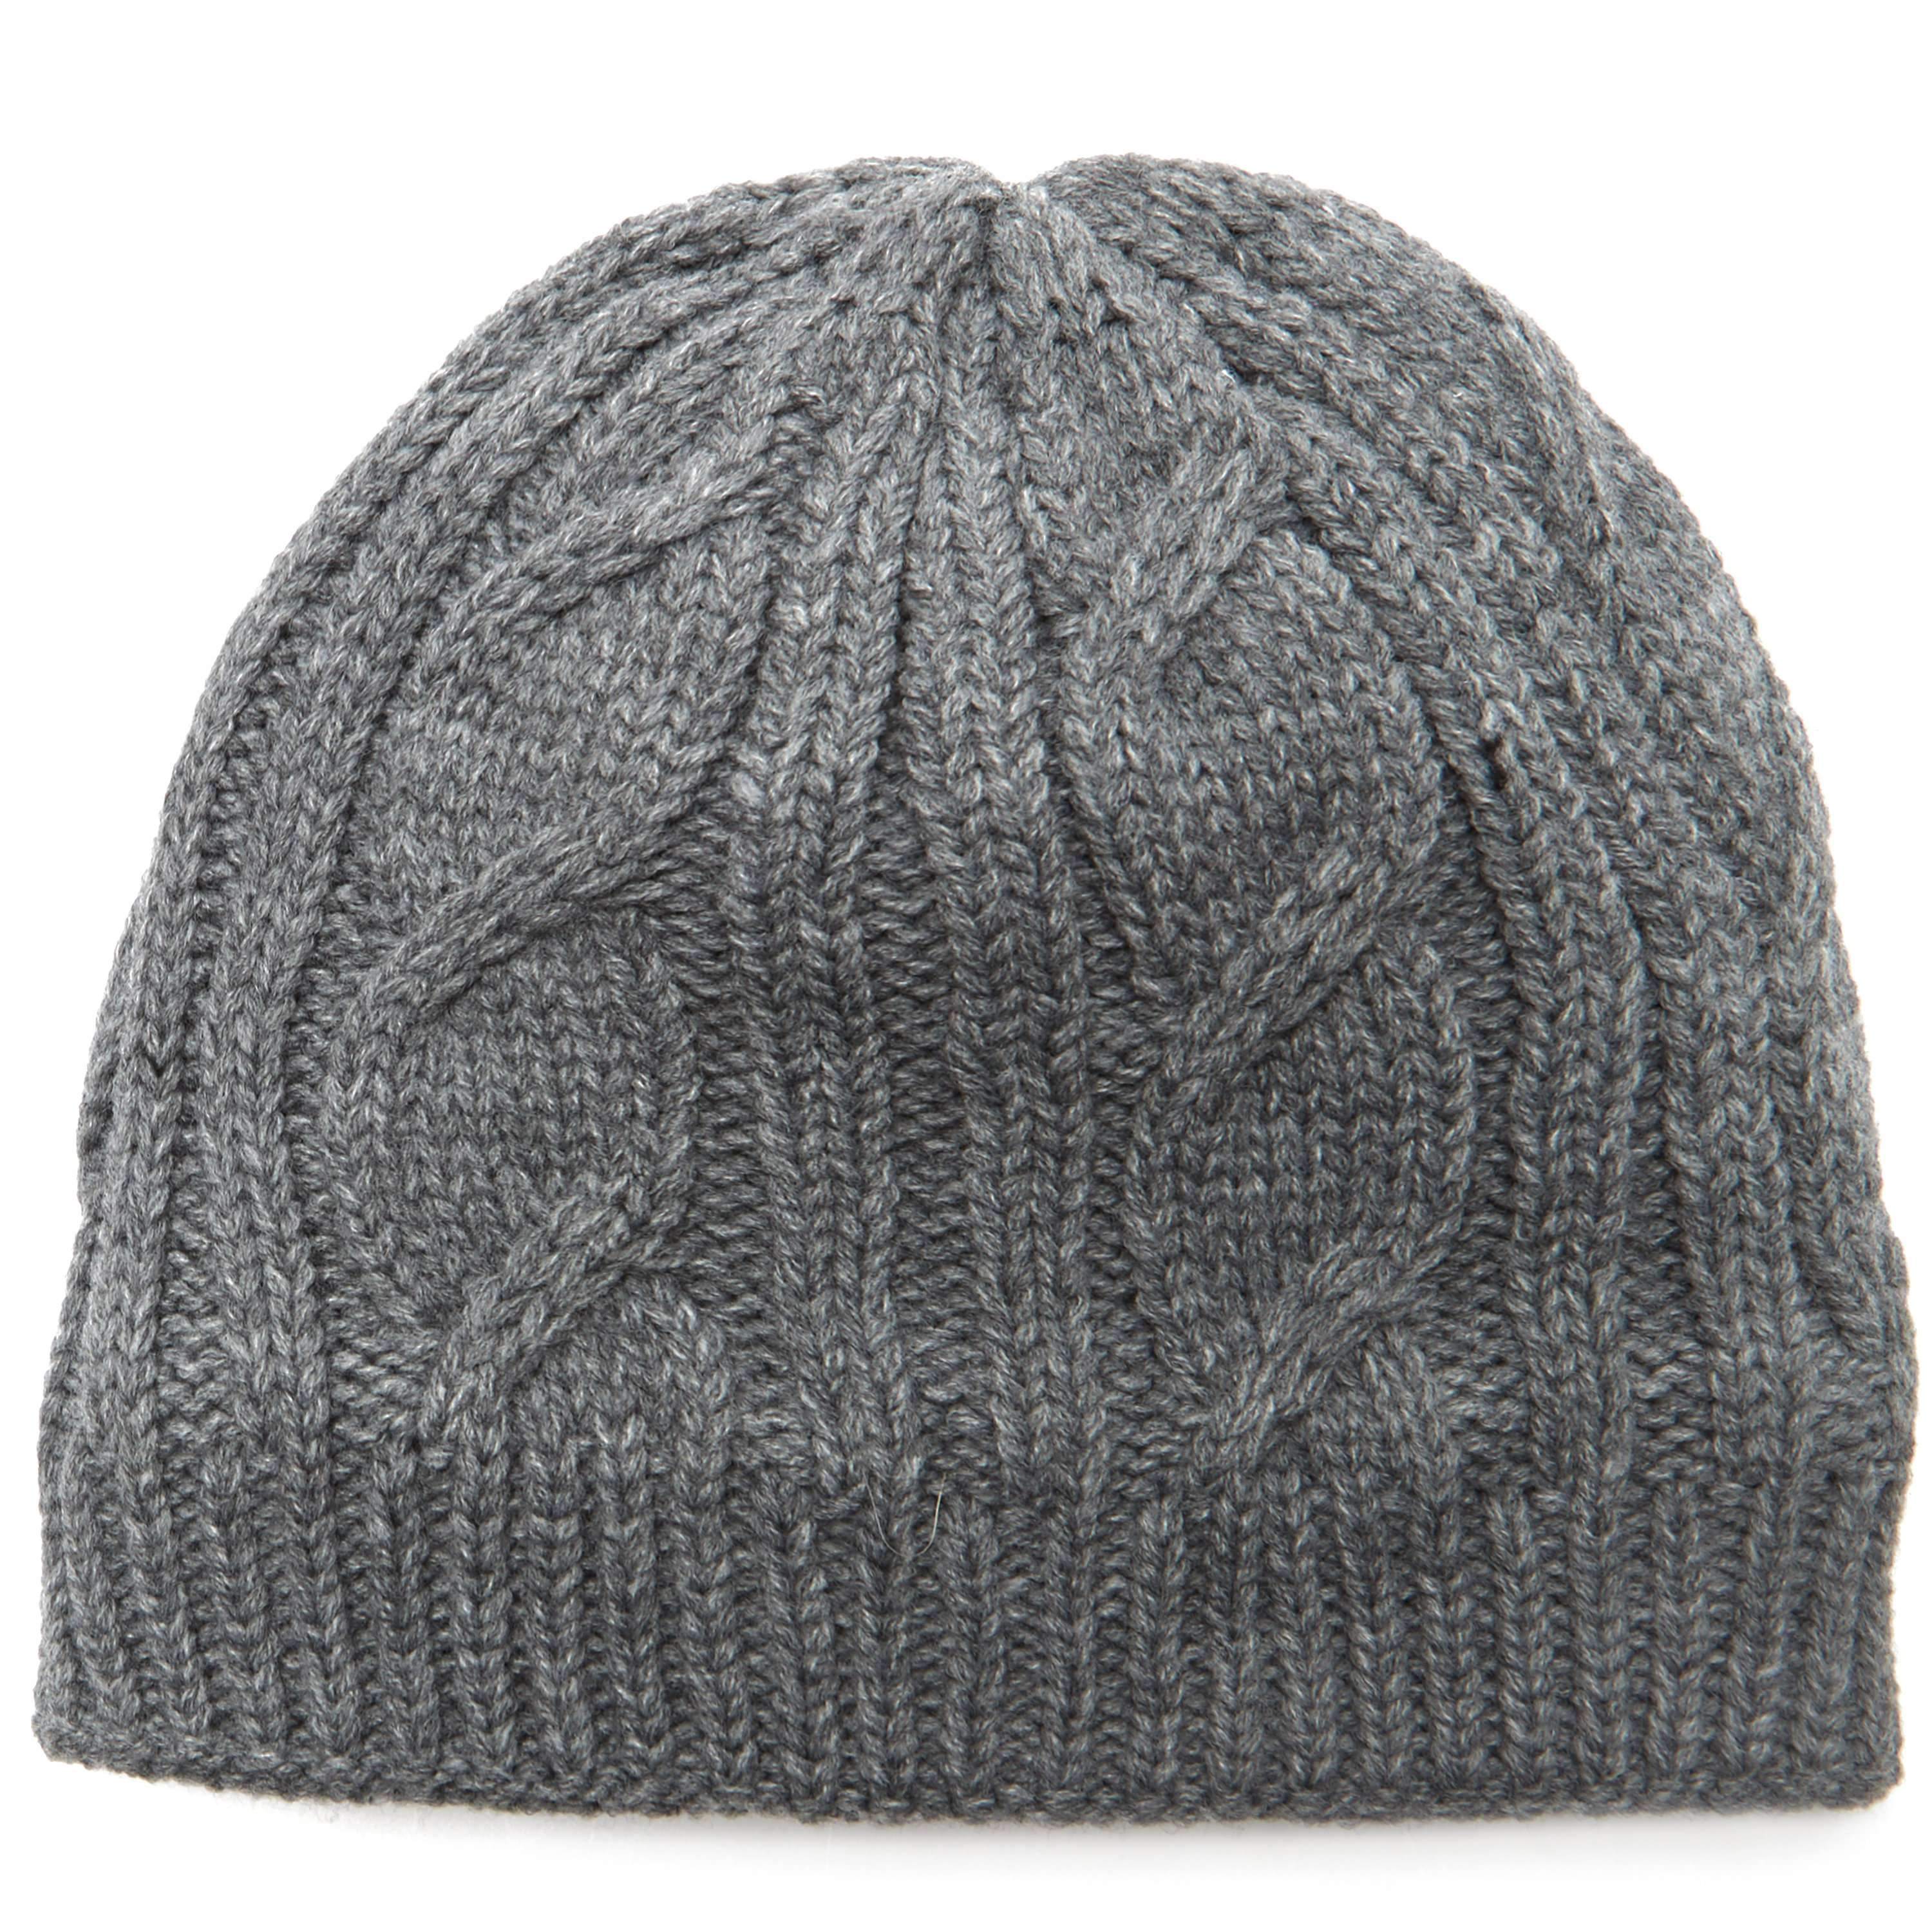 SEALSKINZ Women's Cable Knit Beanie